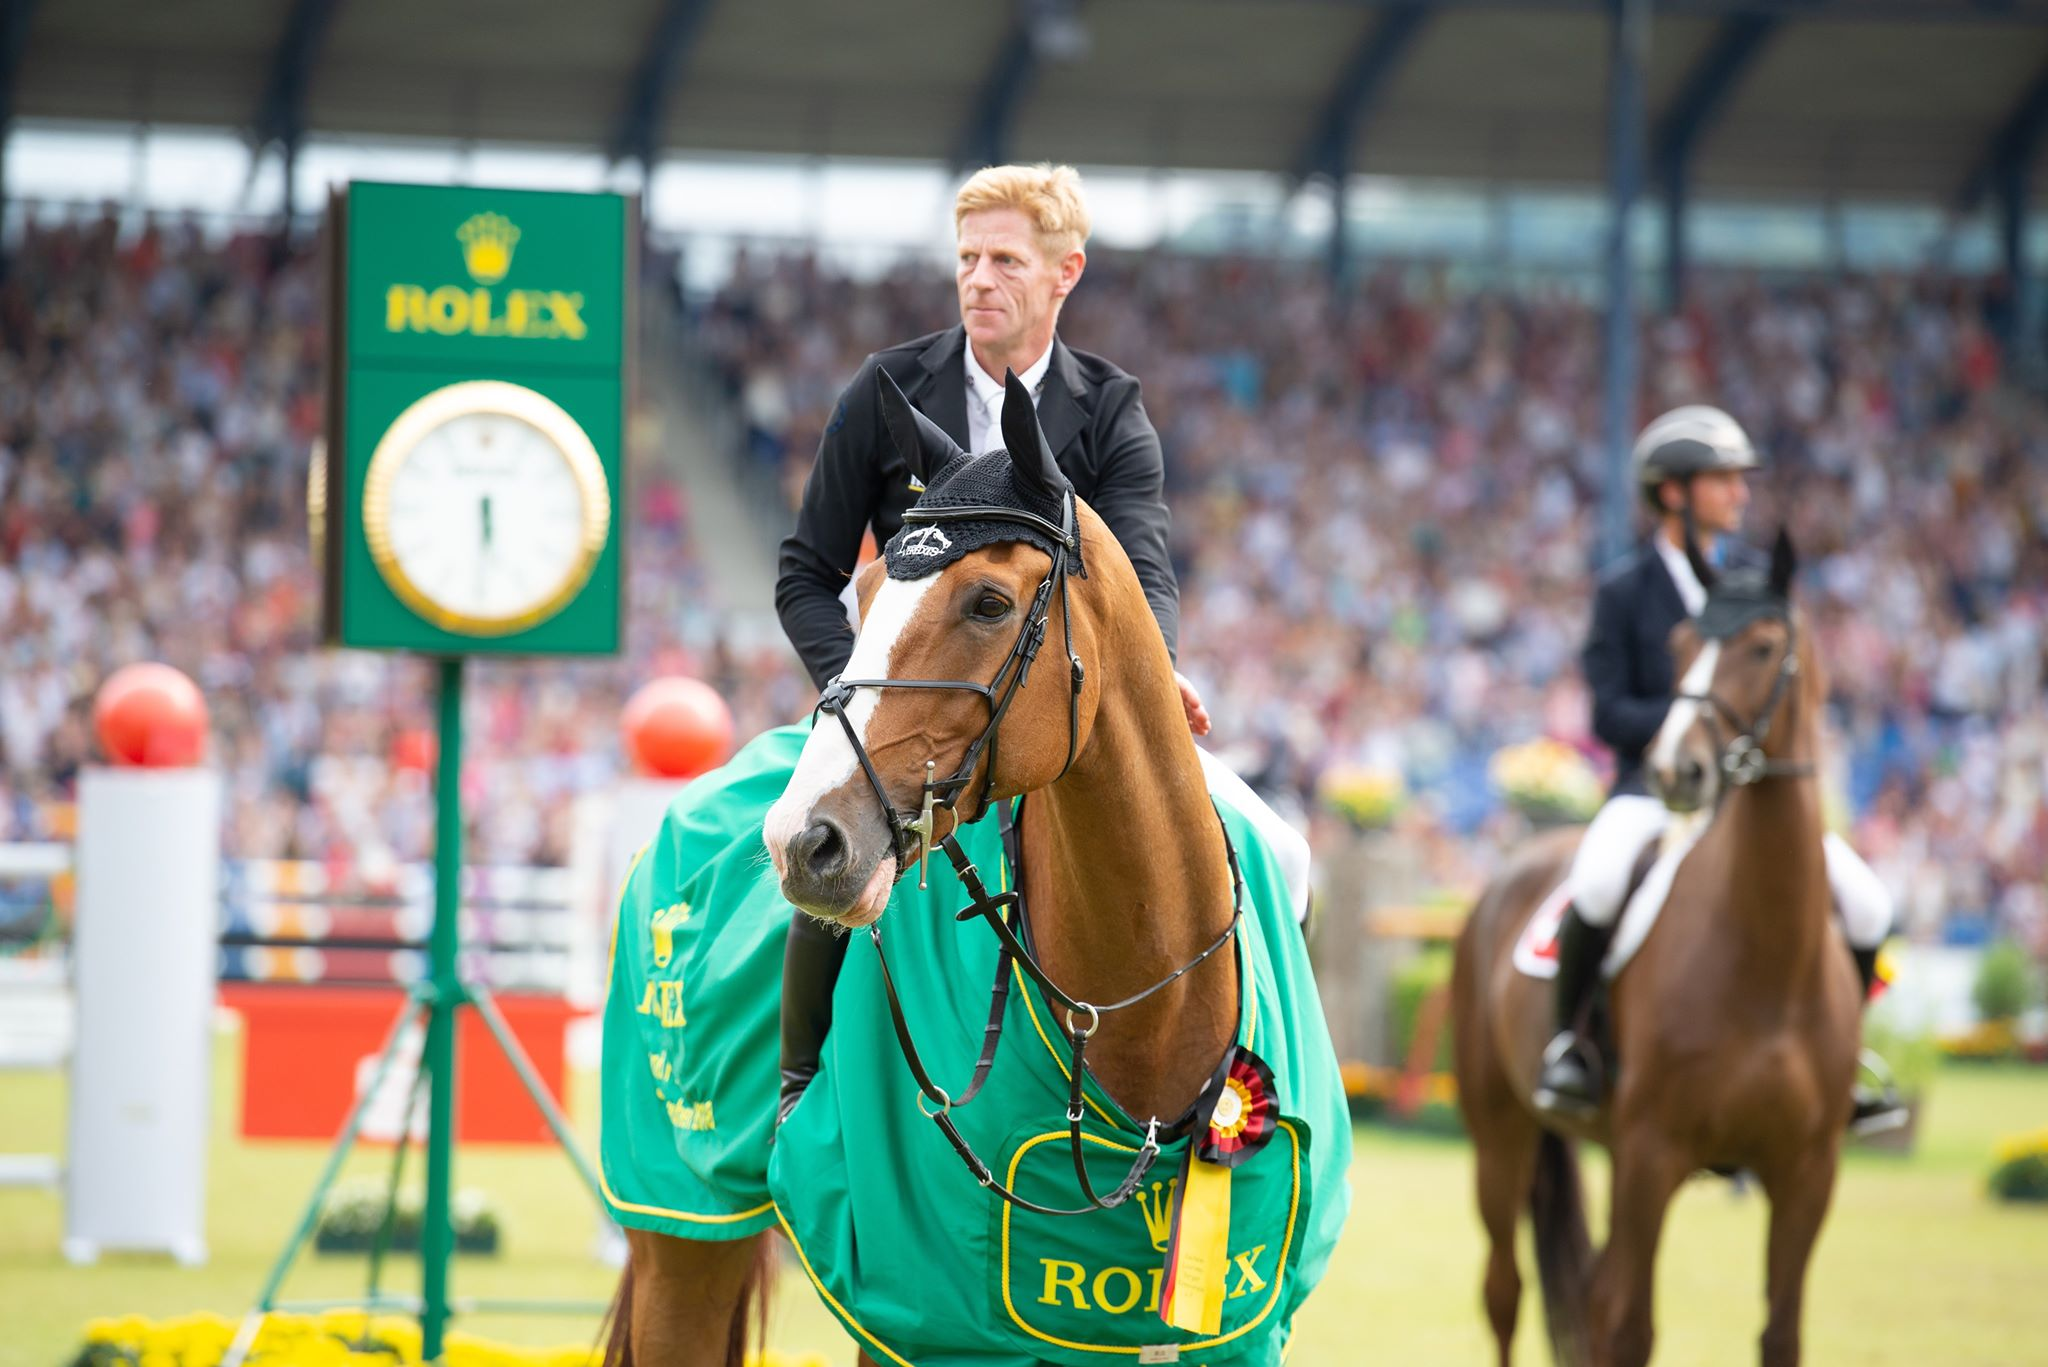 Inside CHIO Aachen 2019: Riders to watch at this year's Rolex Grand Prix